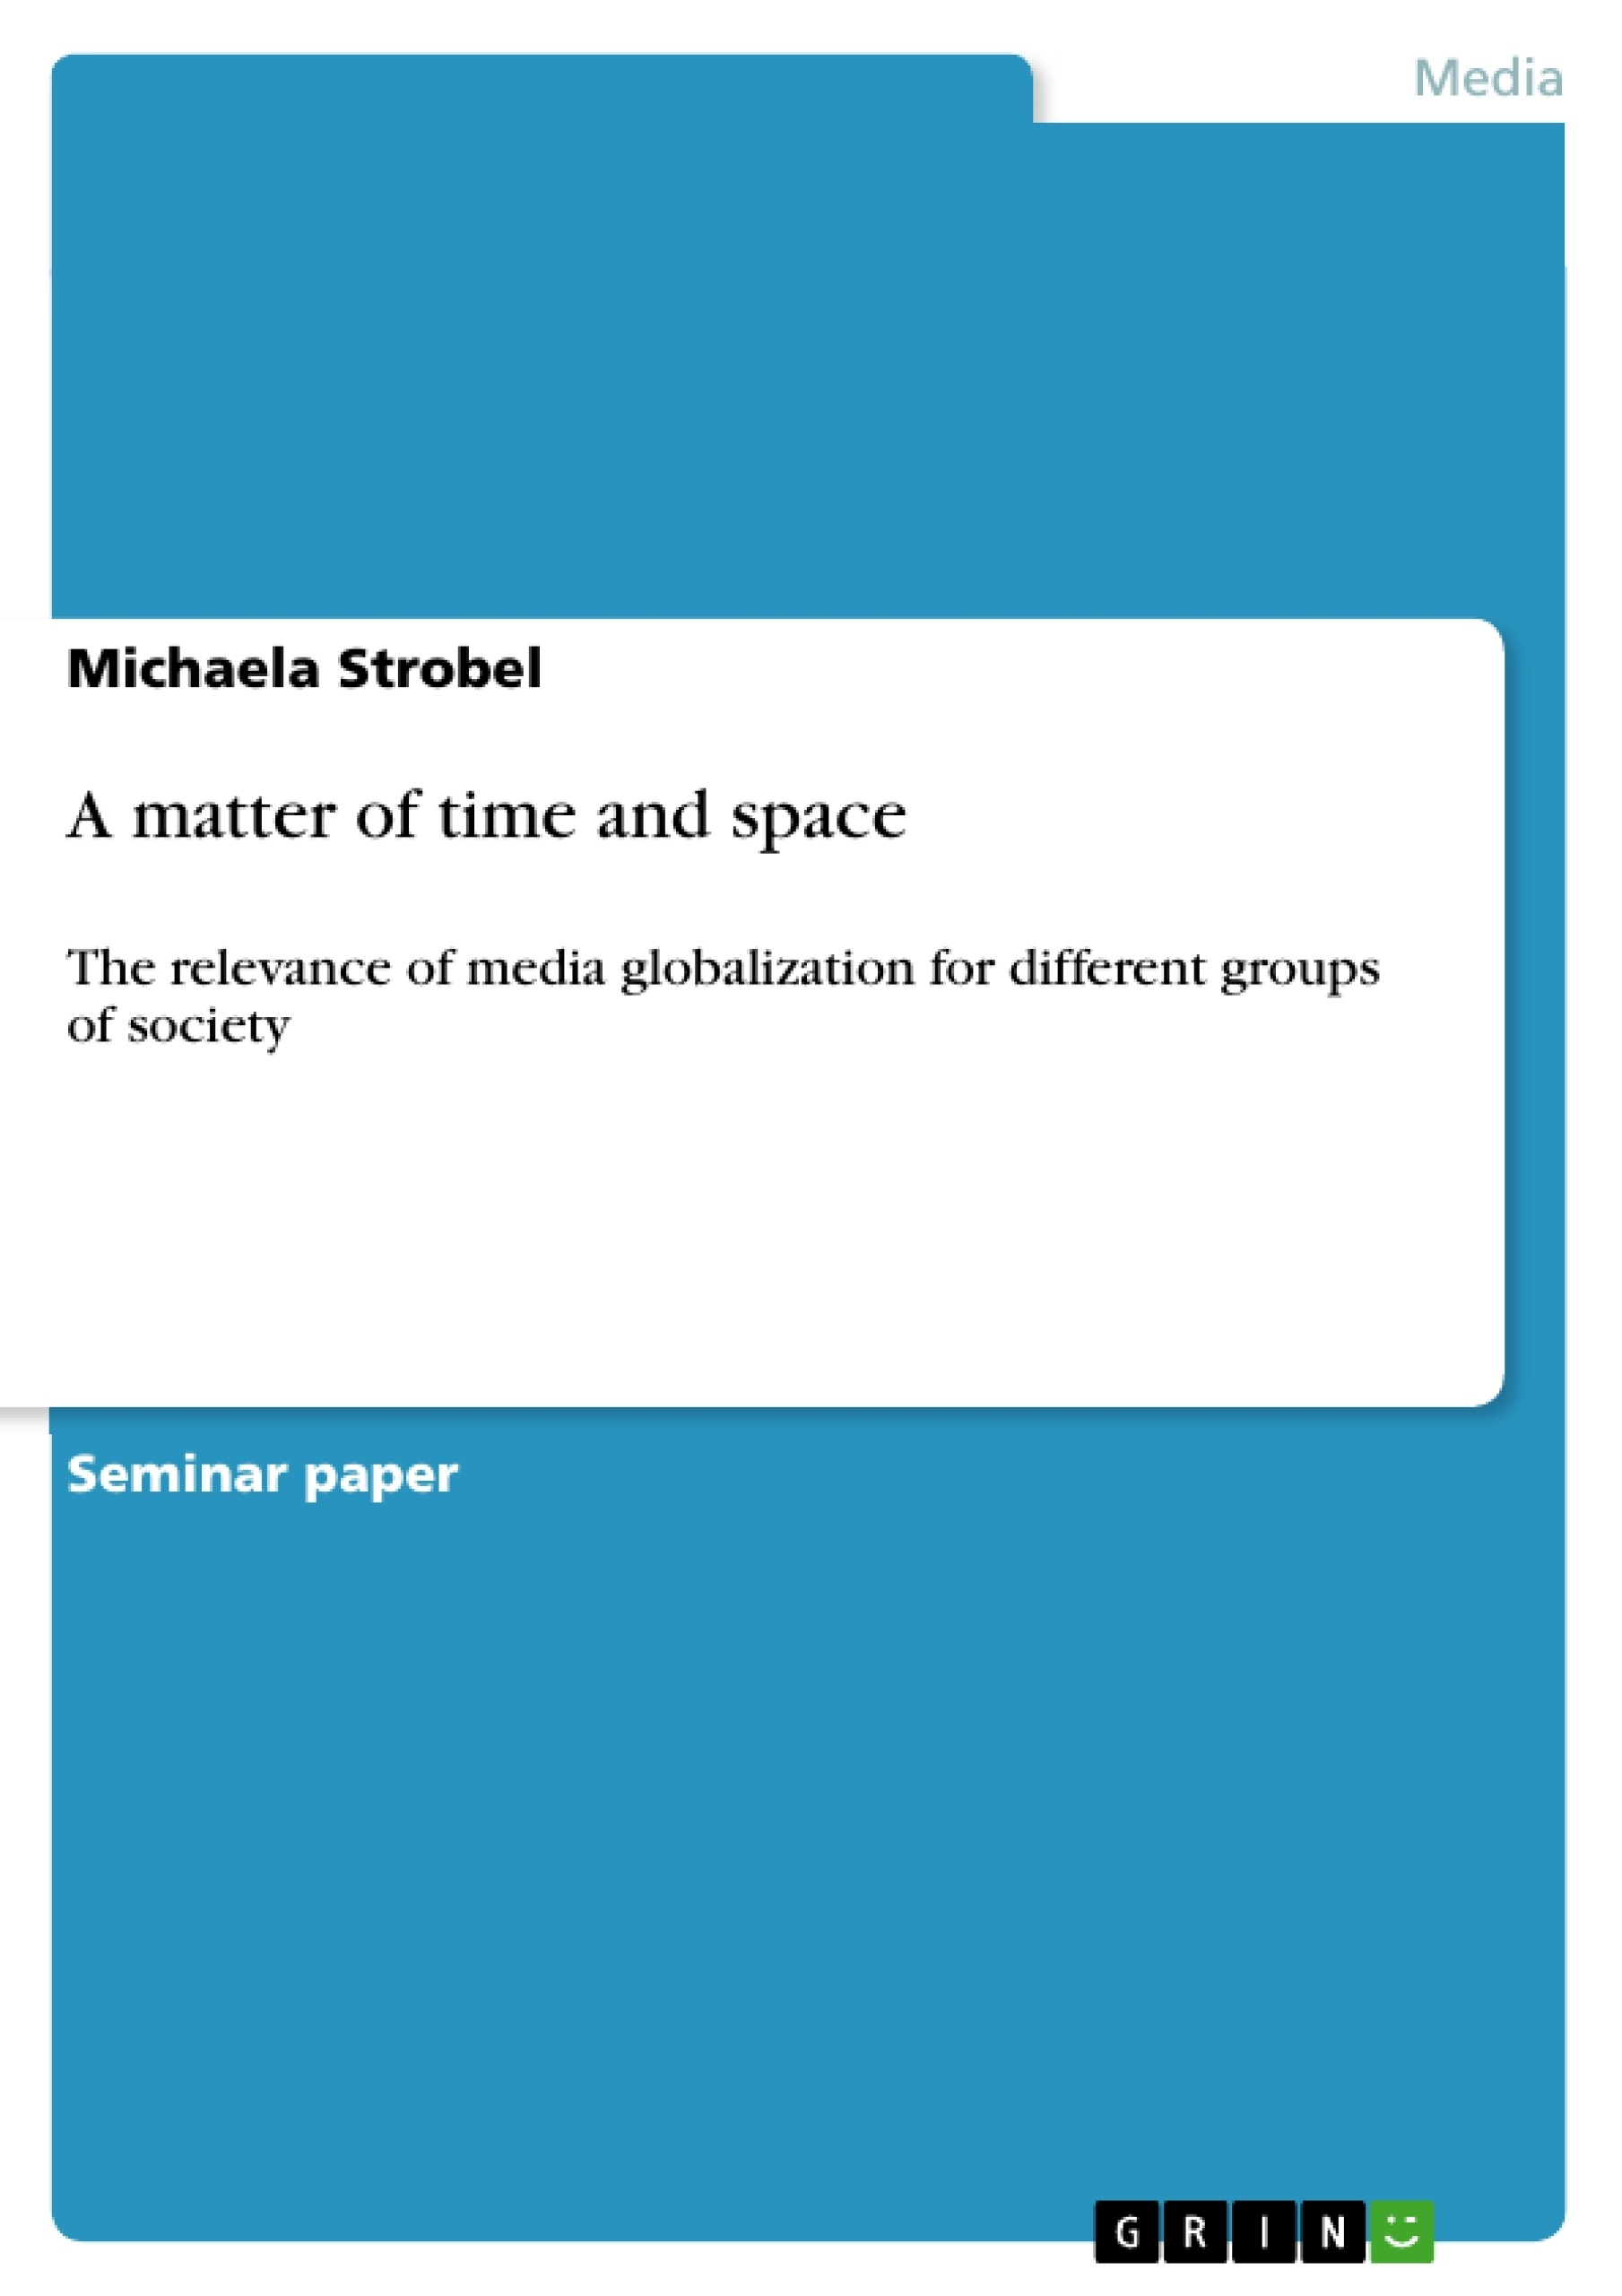 Title: A matter of time and space